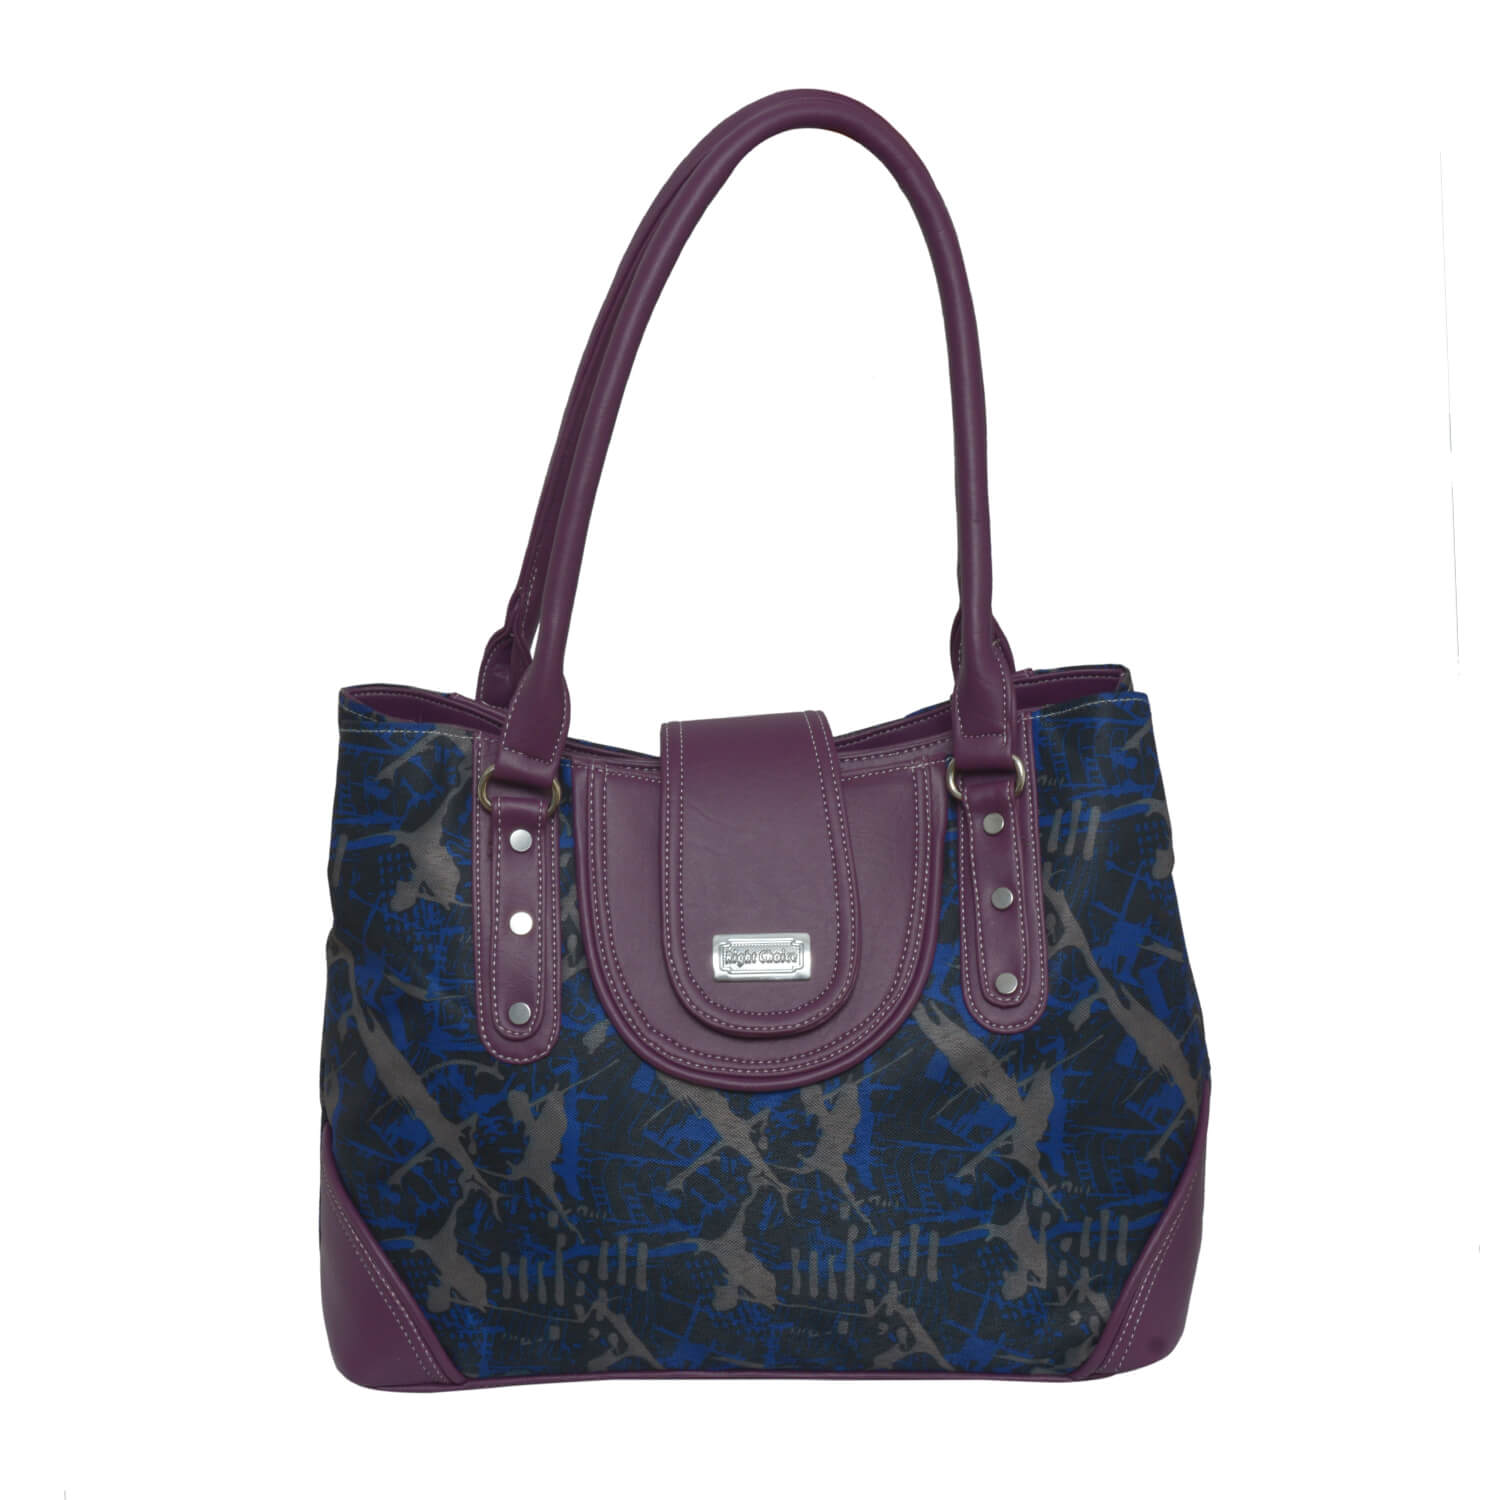 Right Choice RCH315 women's handbags in a modern type